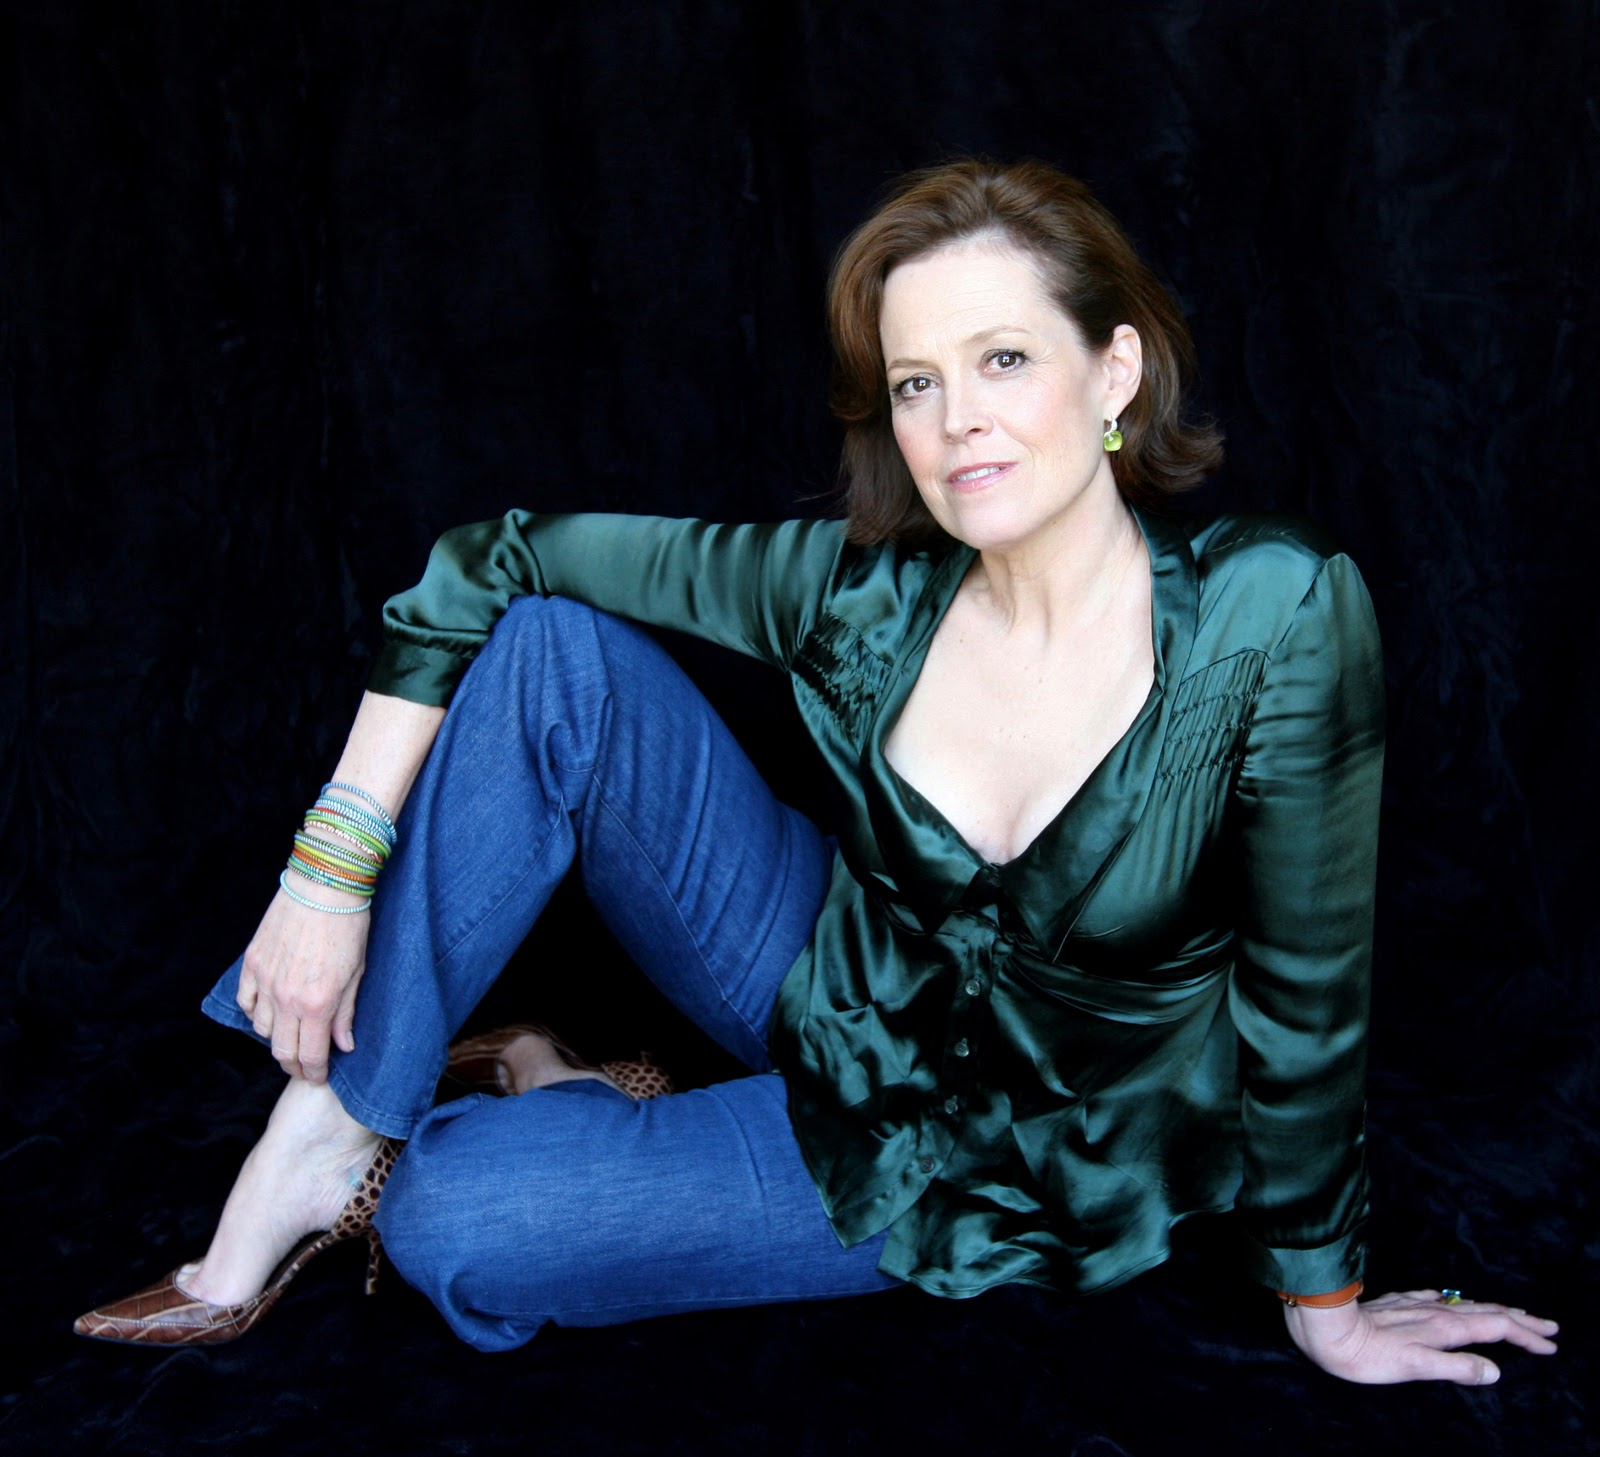 Feet Sigourney Weaver naked (12 photo), Topless, Cleavage, Boobs, cameltoe 2006